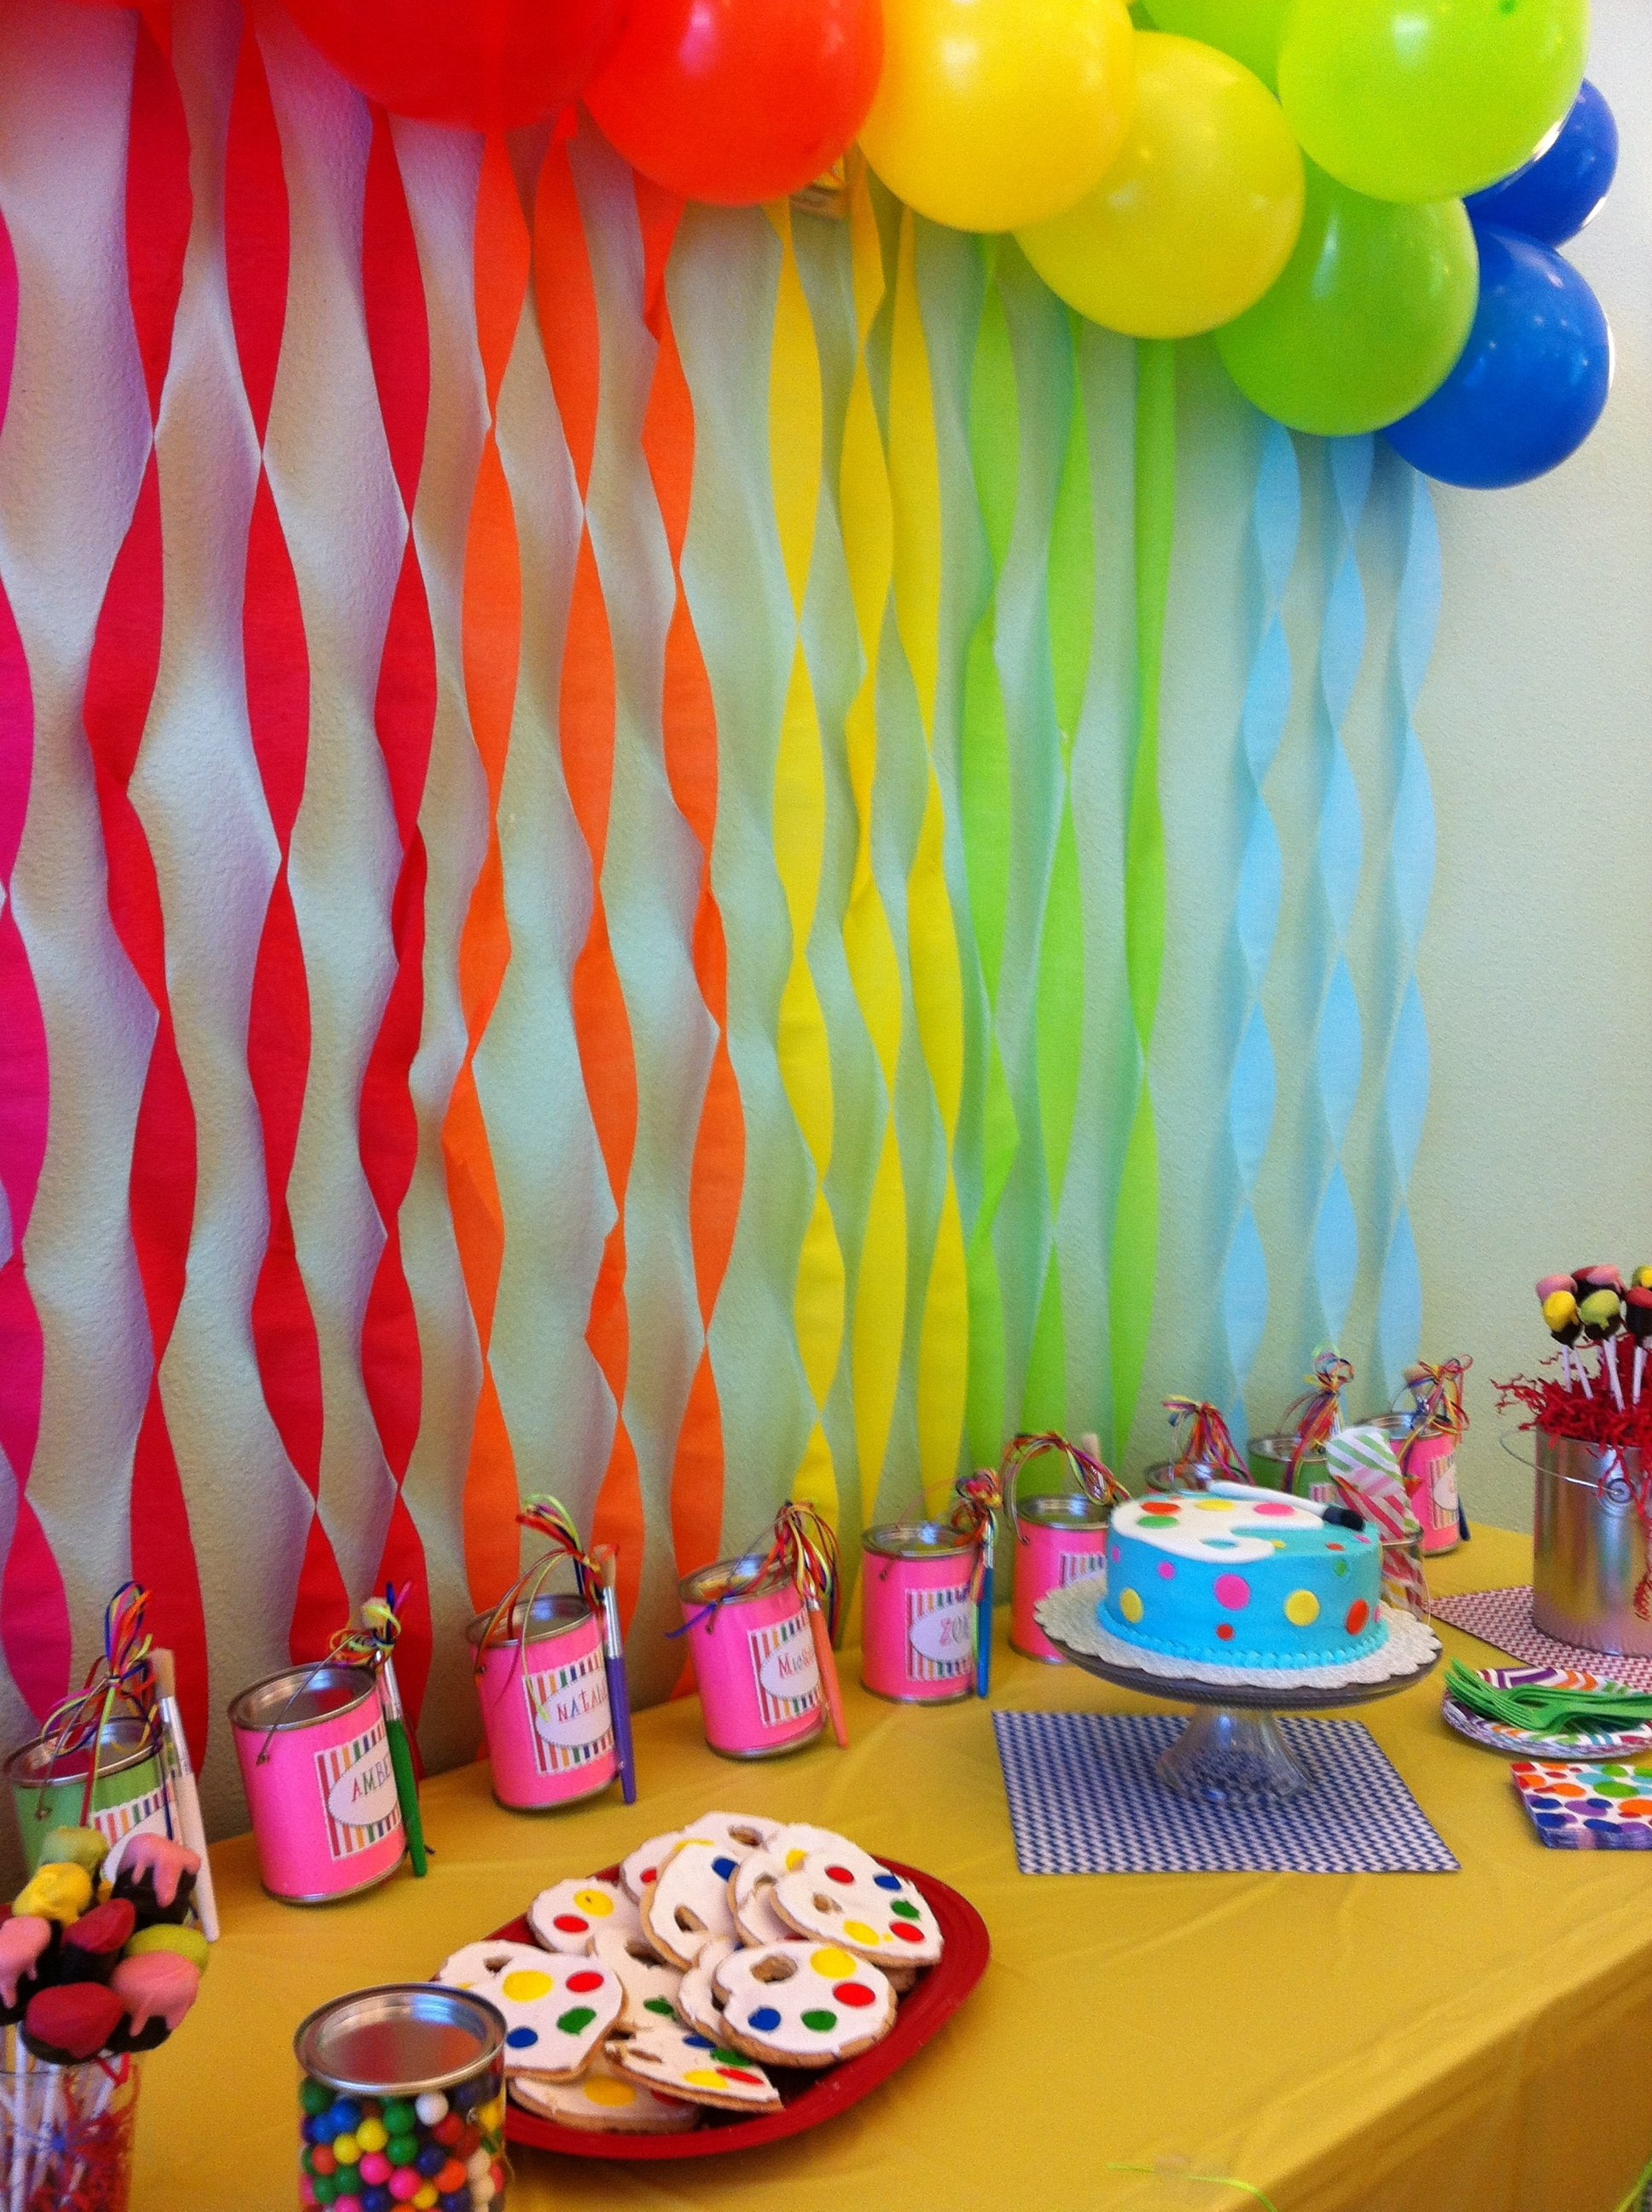 10 Gorgeous Birthday Party Ideas For 9 Yr Old Girl 8 year old girl birthday art party art party pinterest art 38 2020